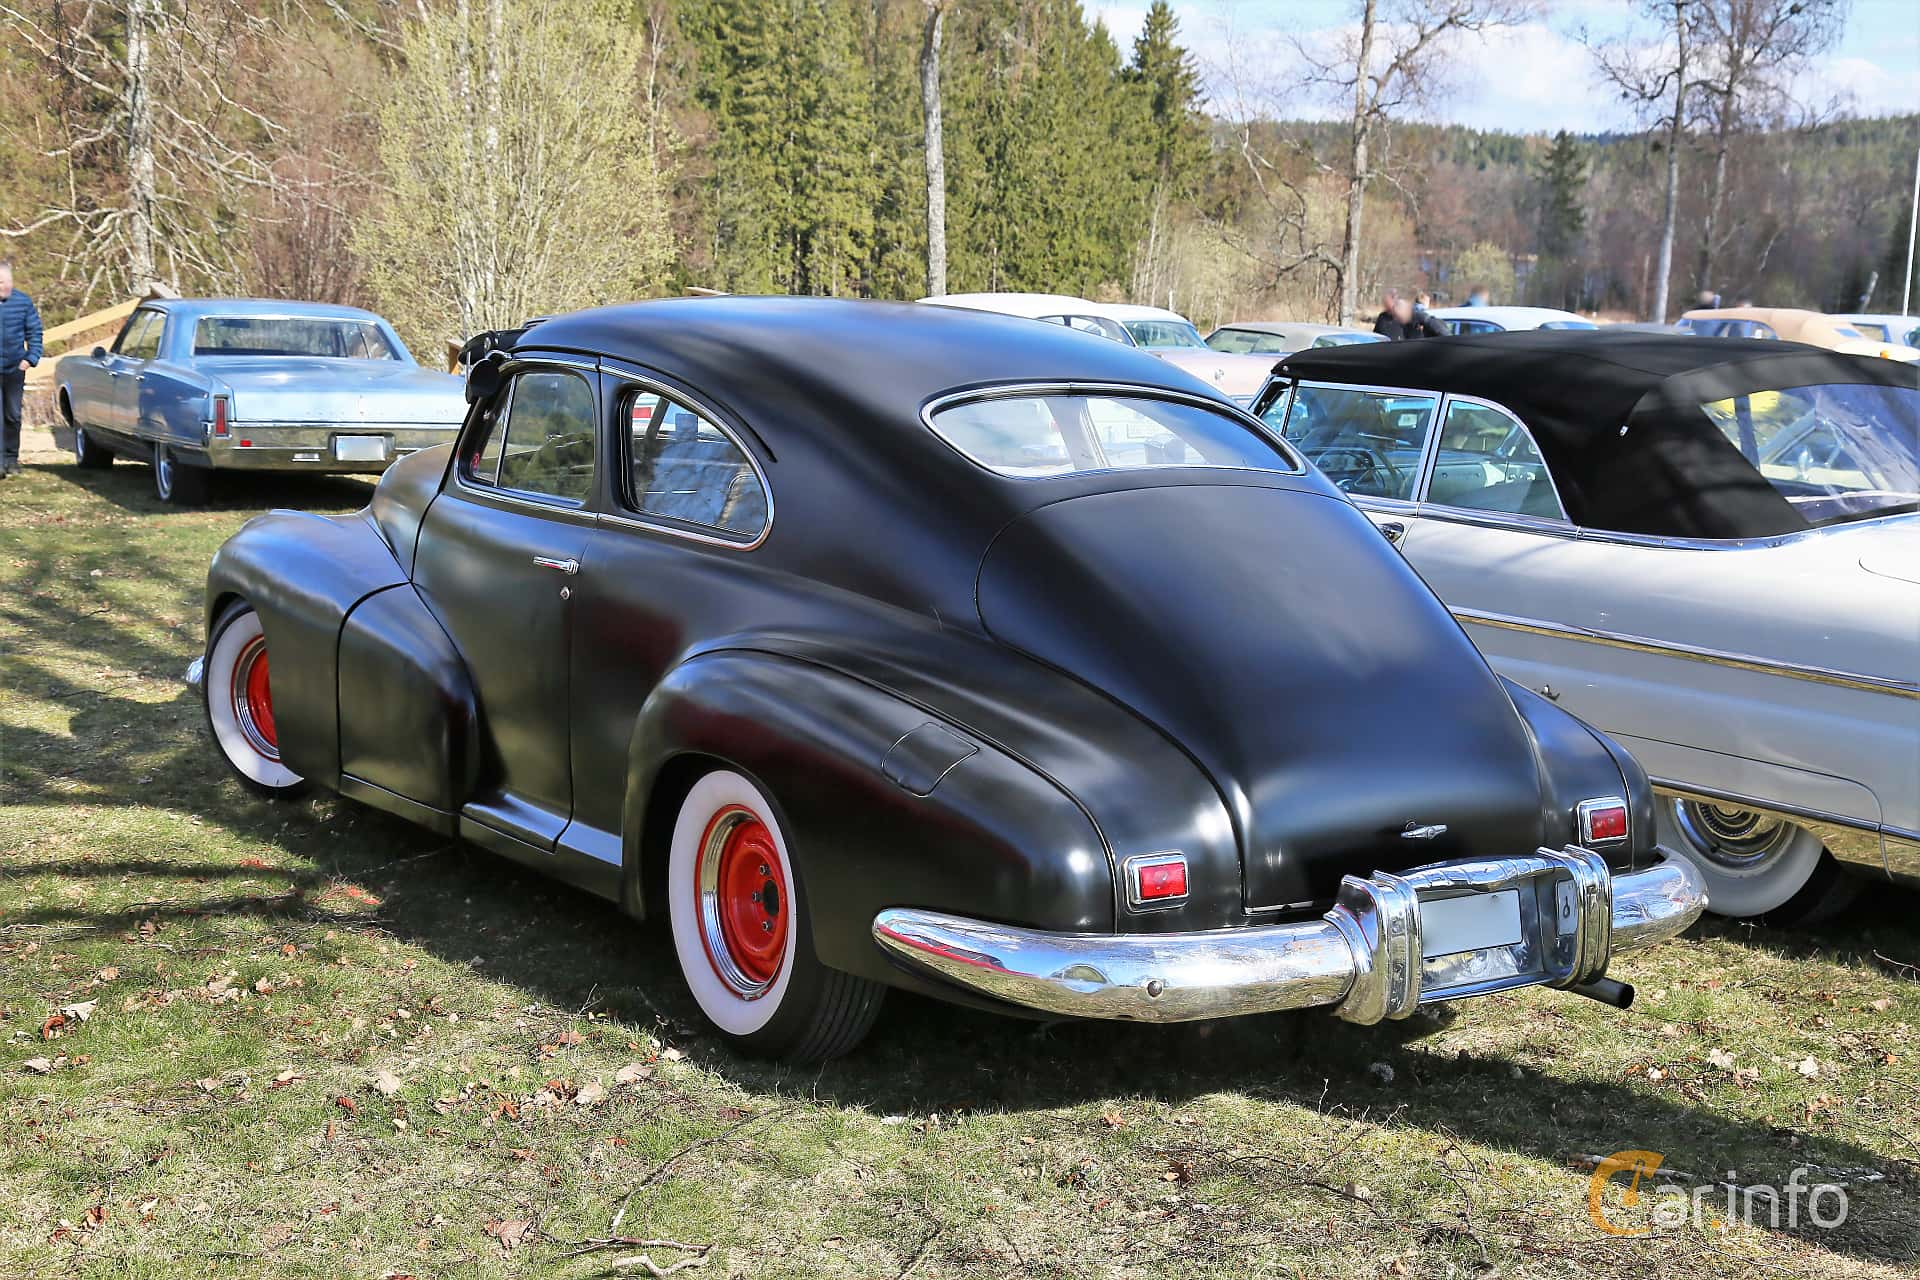 Oldsmobile Dynamic Cruiser 78 Club Sedan 4.2 Hydra-Matic, 112hp, 1947 at Uddevalla Veteranbilsmarknad Backamo, Ljungsk 2019